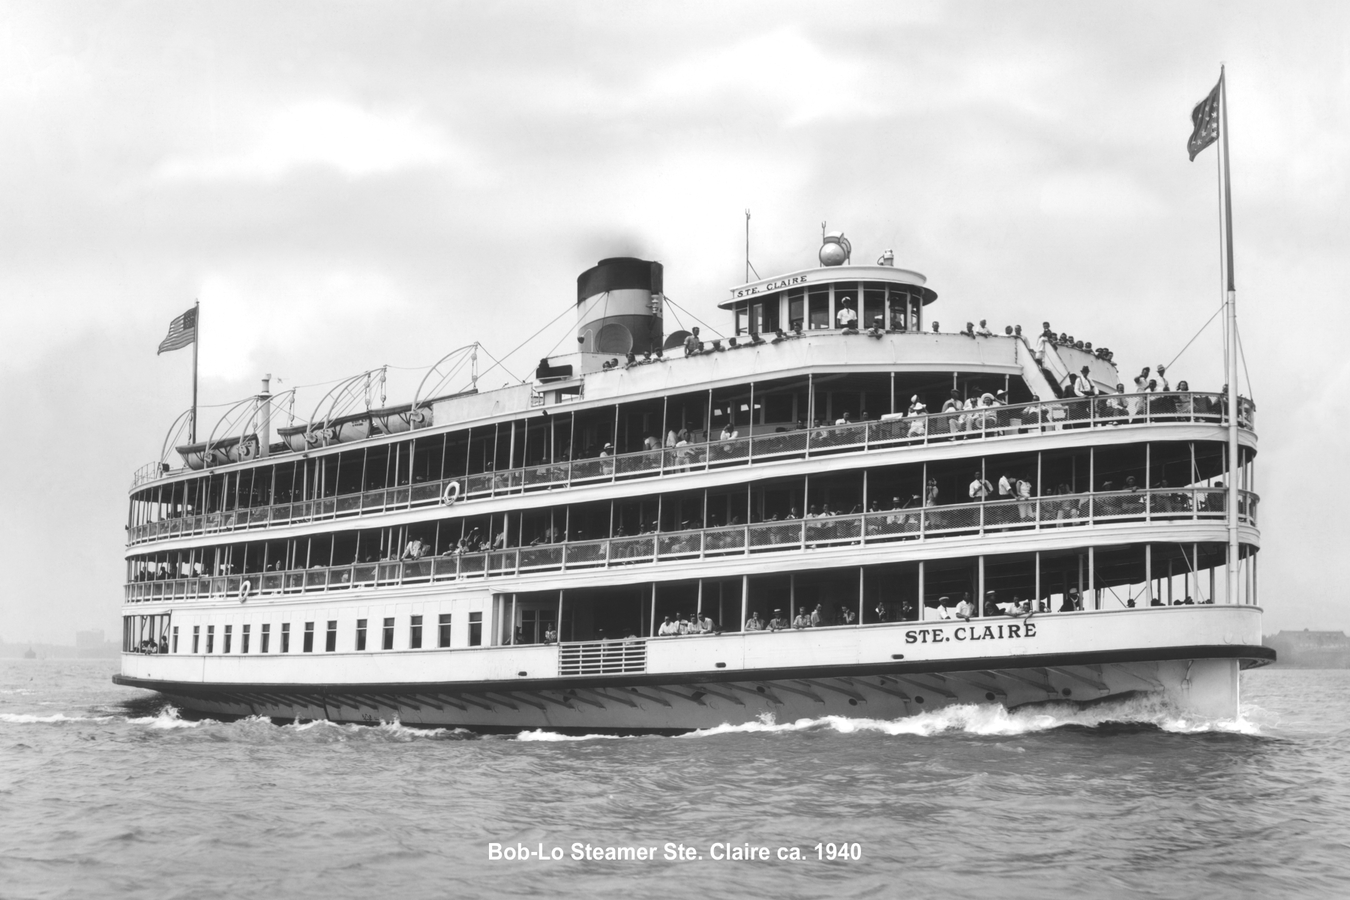 Historic Photographs Bob-Lo Steamer Ste. Claire ca. 1940